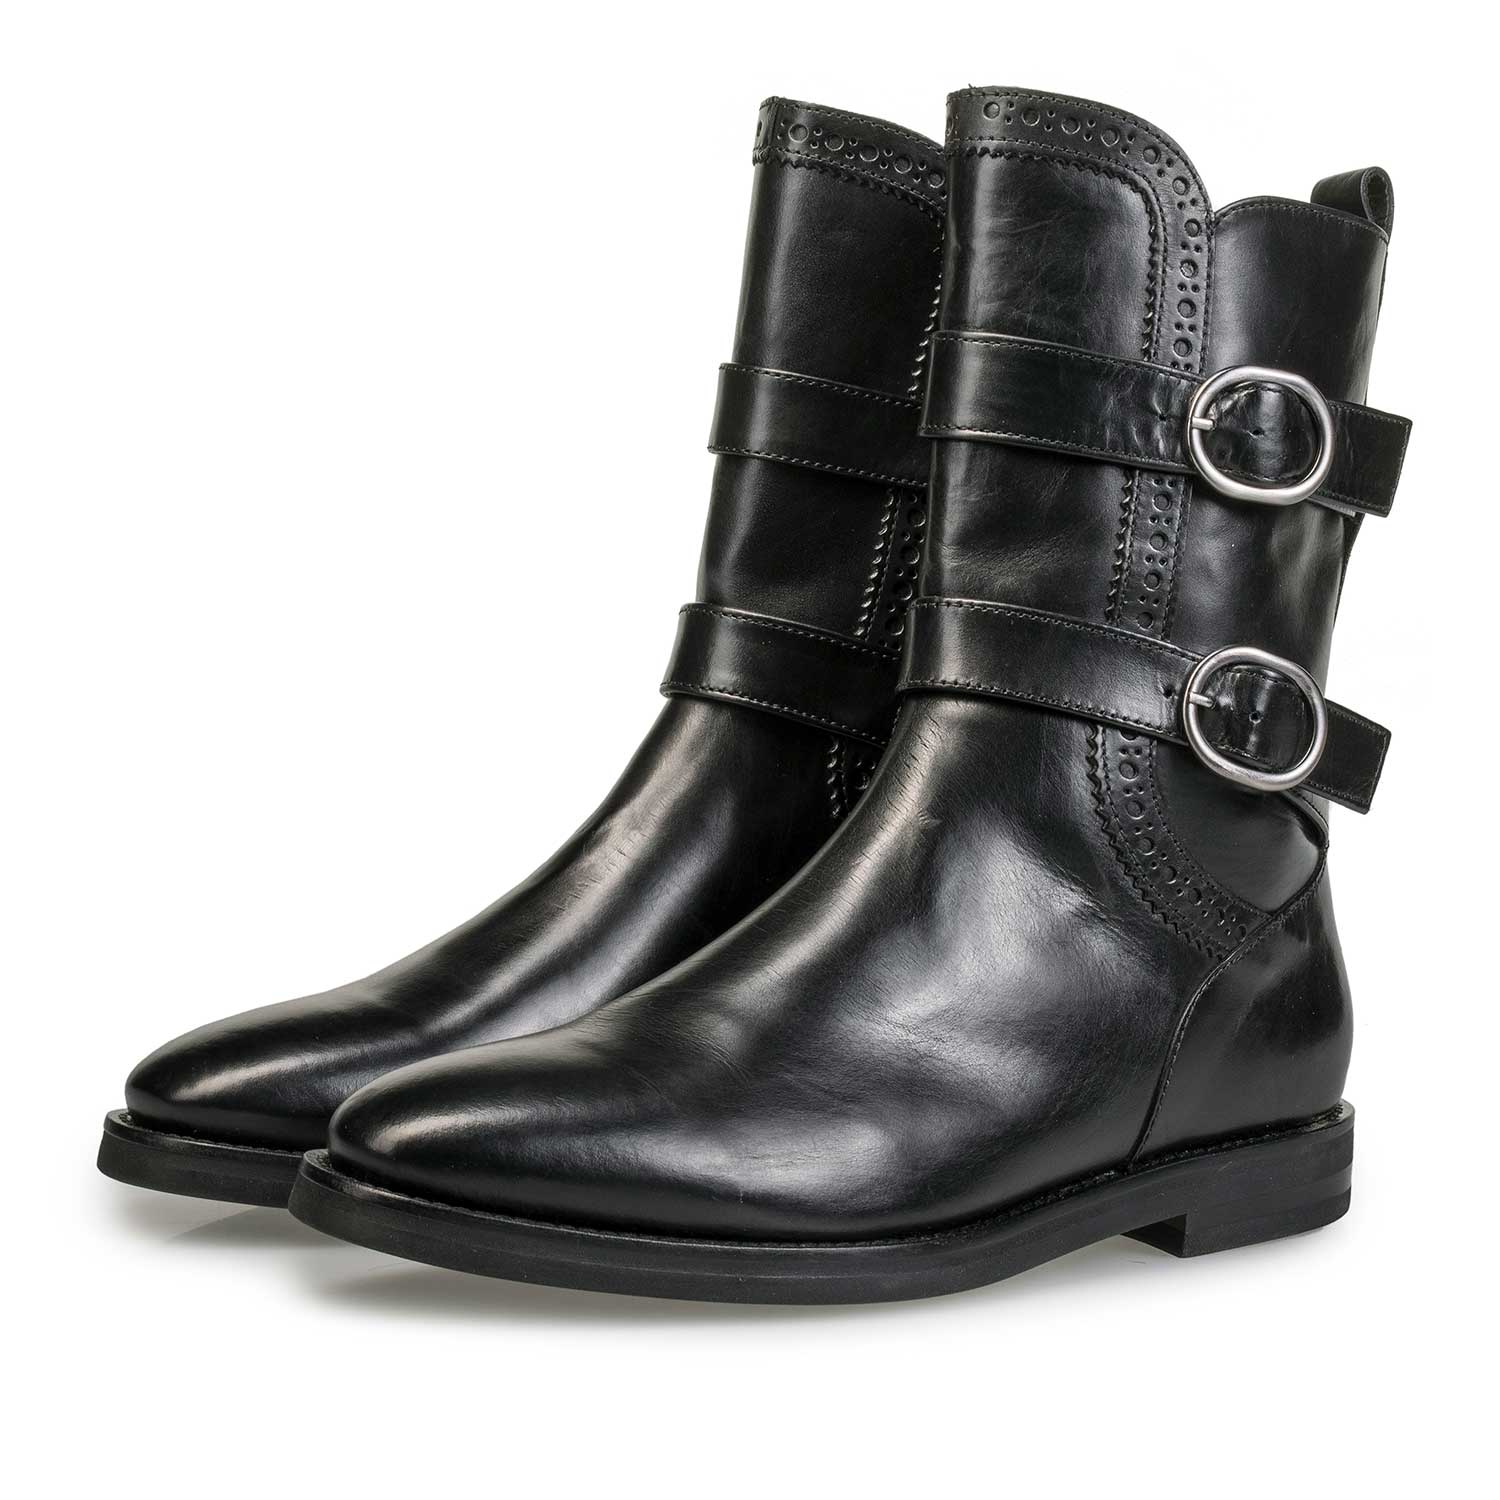 85605/00 - Black calf leather buckle boot